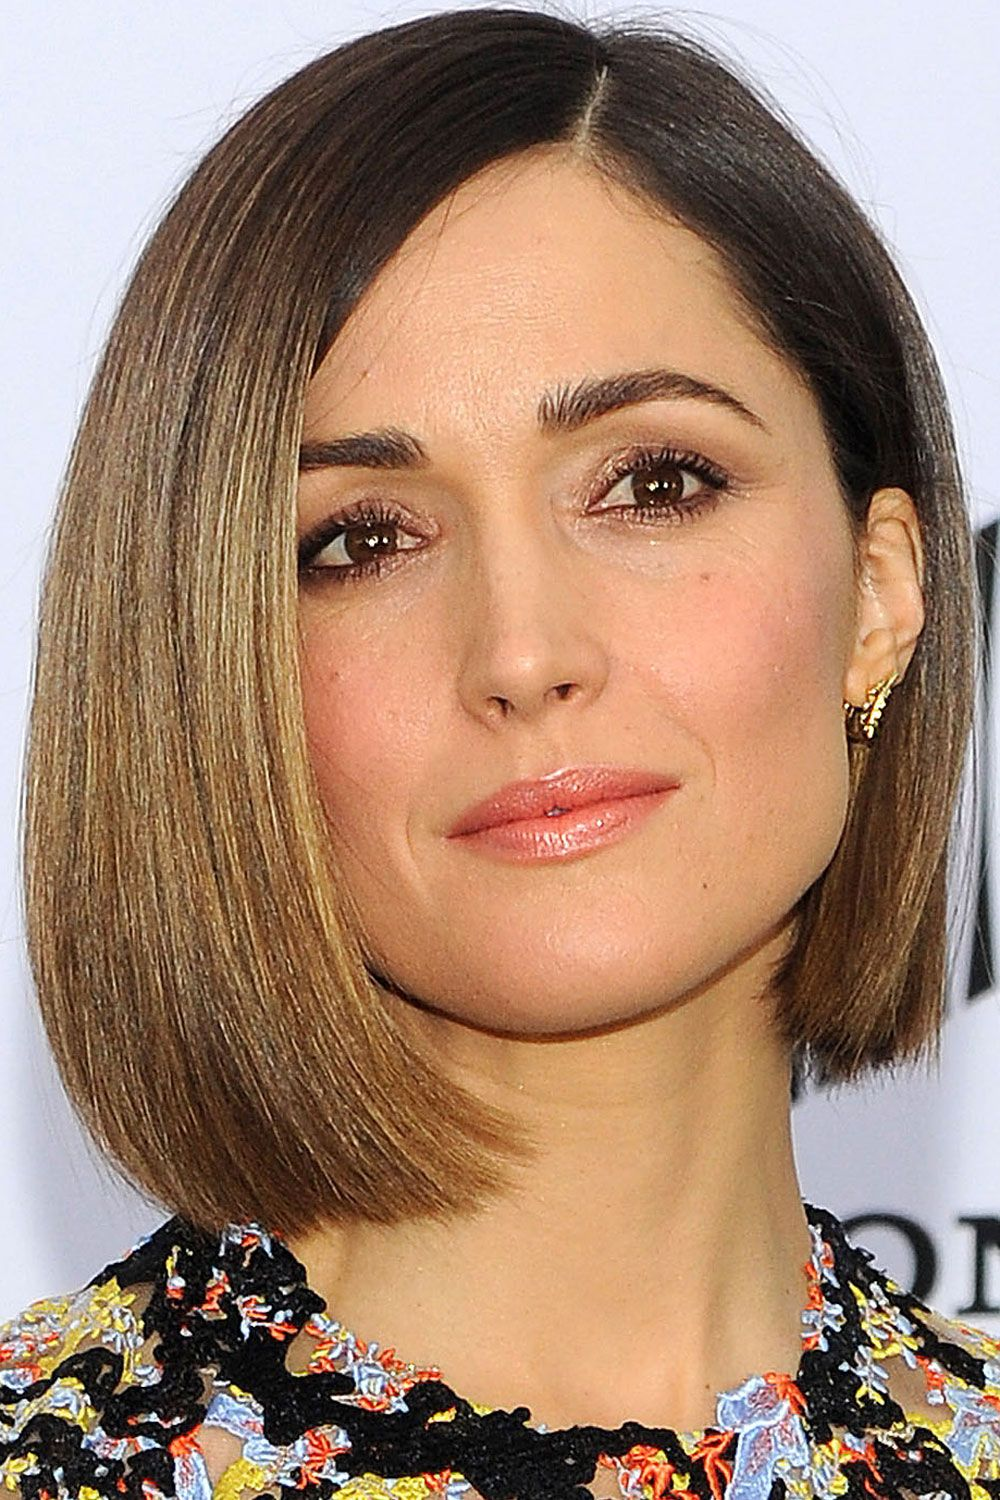 100 Short Haircut Styles for Over 60 Women in 2021 dddf2e204c873ef7167db7c8c93730fc